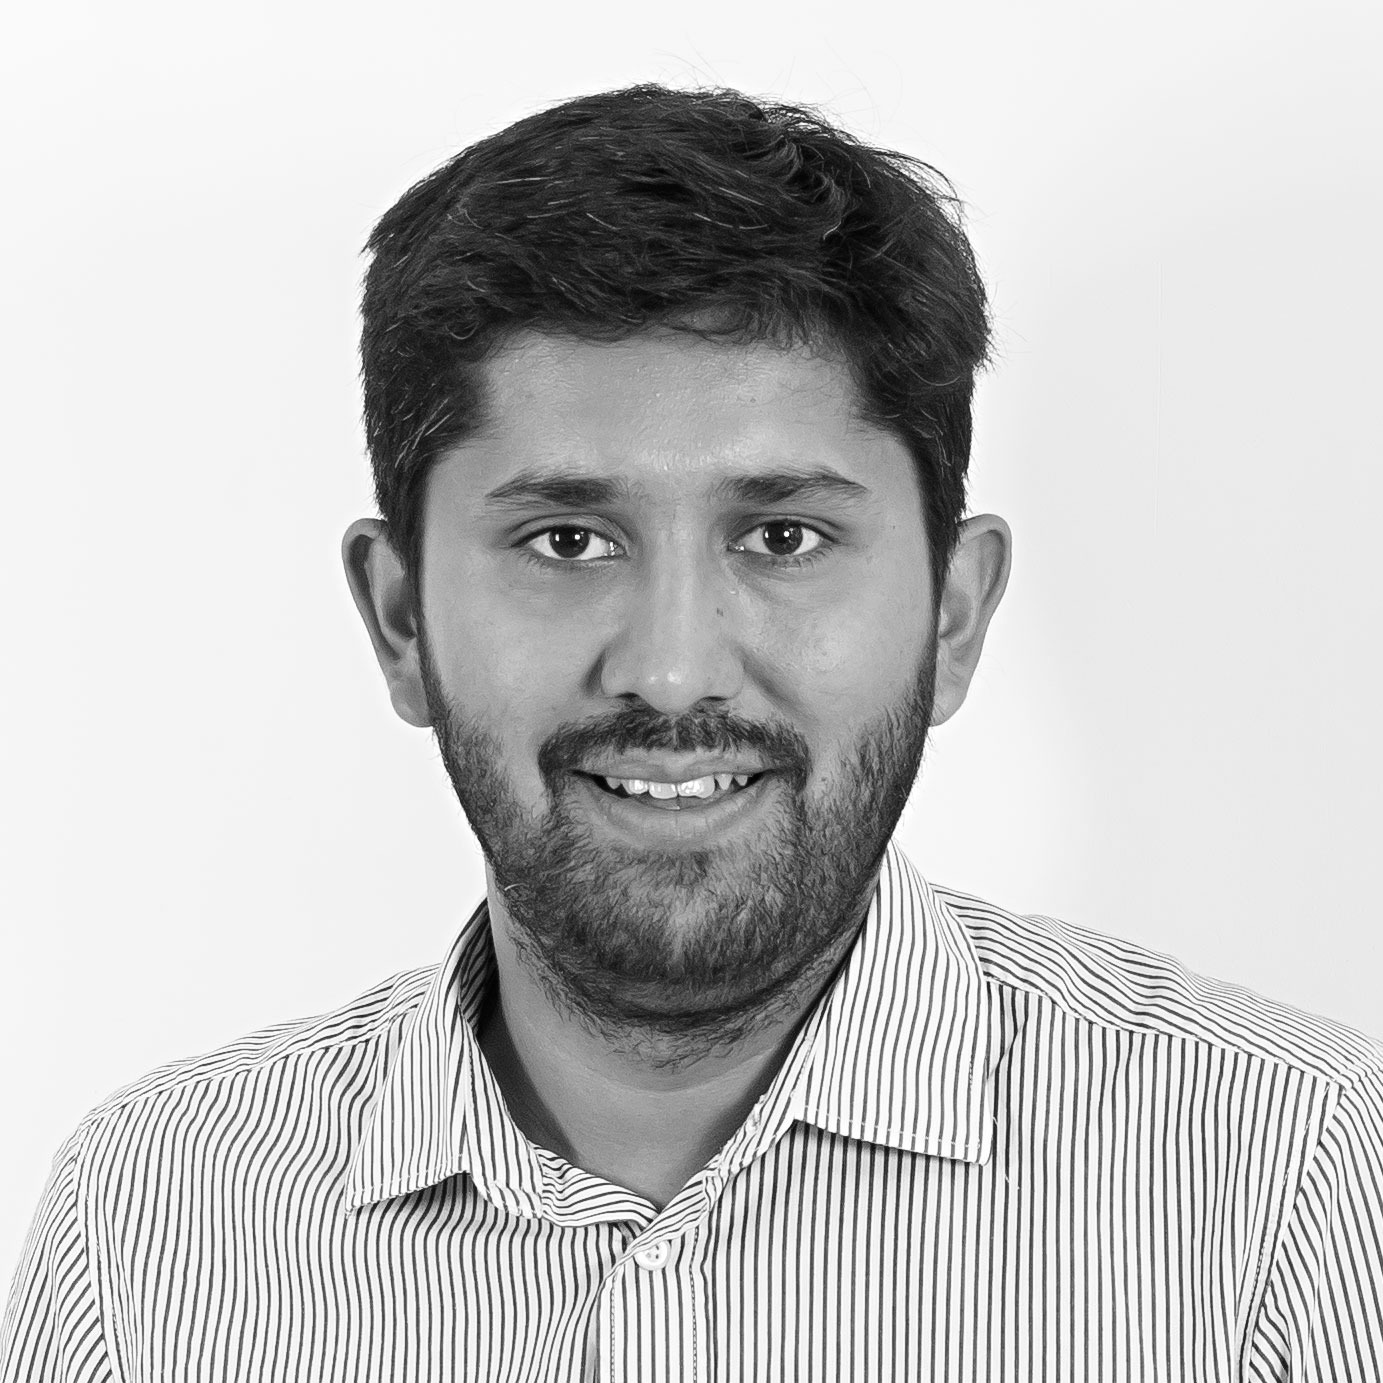 RUCHIR PUNJABI, Co-Founder & Chief Digital Officer, Distributed Energy